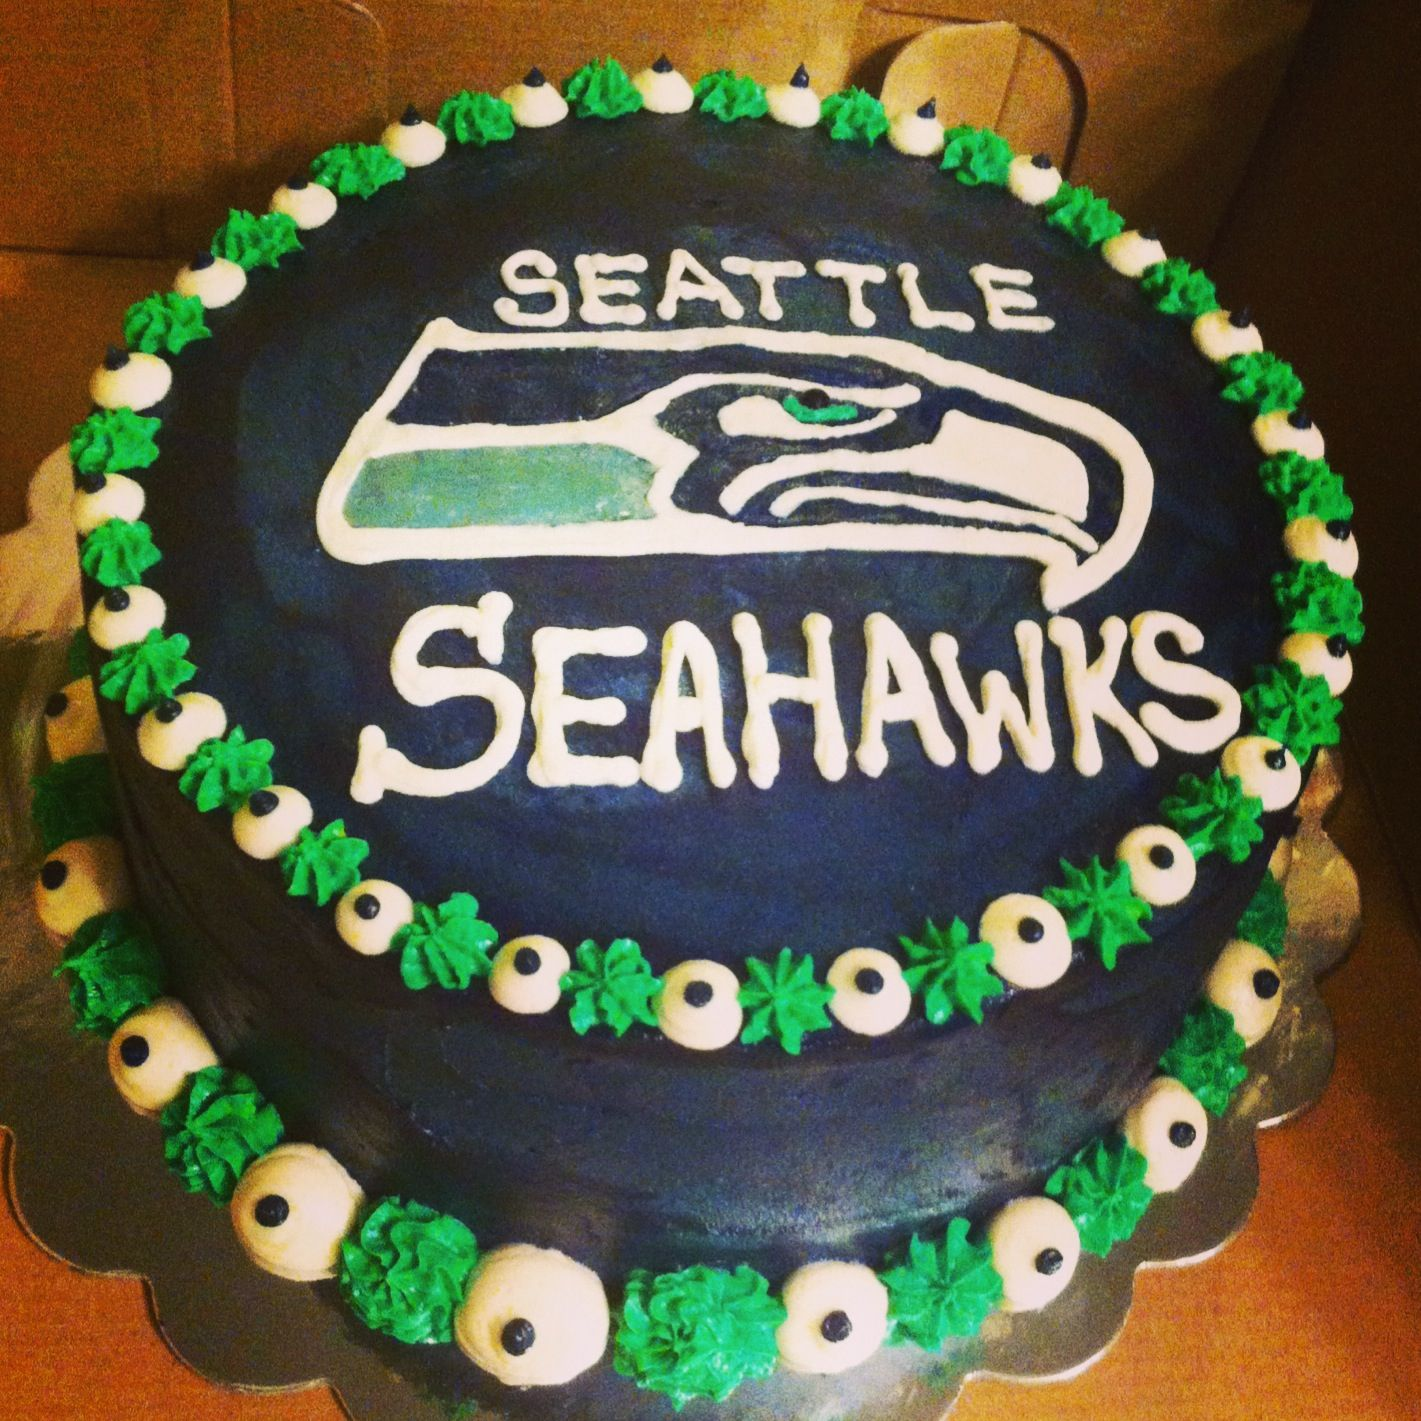 Sensational Seahawks Cake With Images Seahawks Cake Seattle Seahawks Cake Birthday Cards Printable Opercafe Filternl